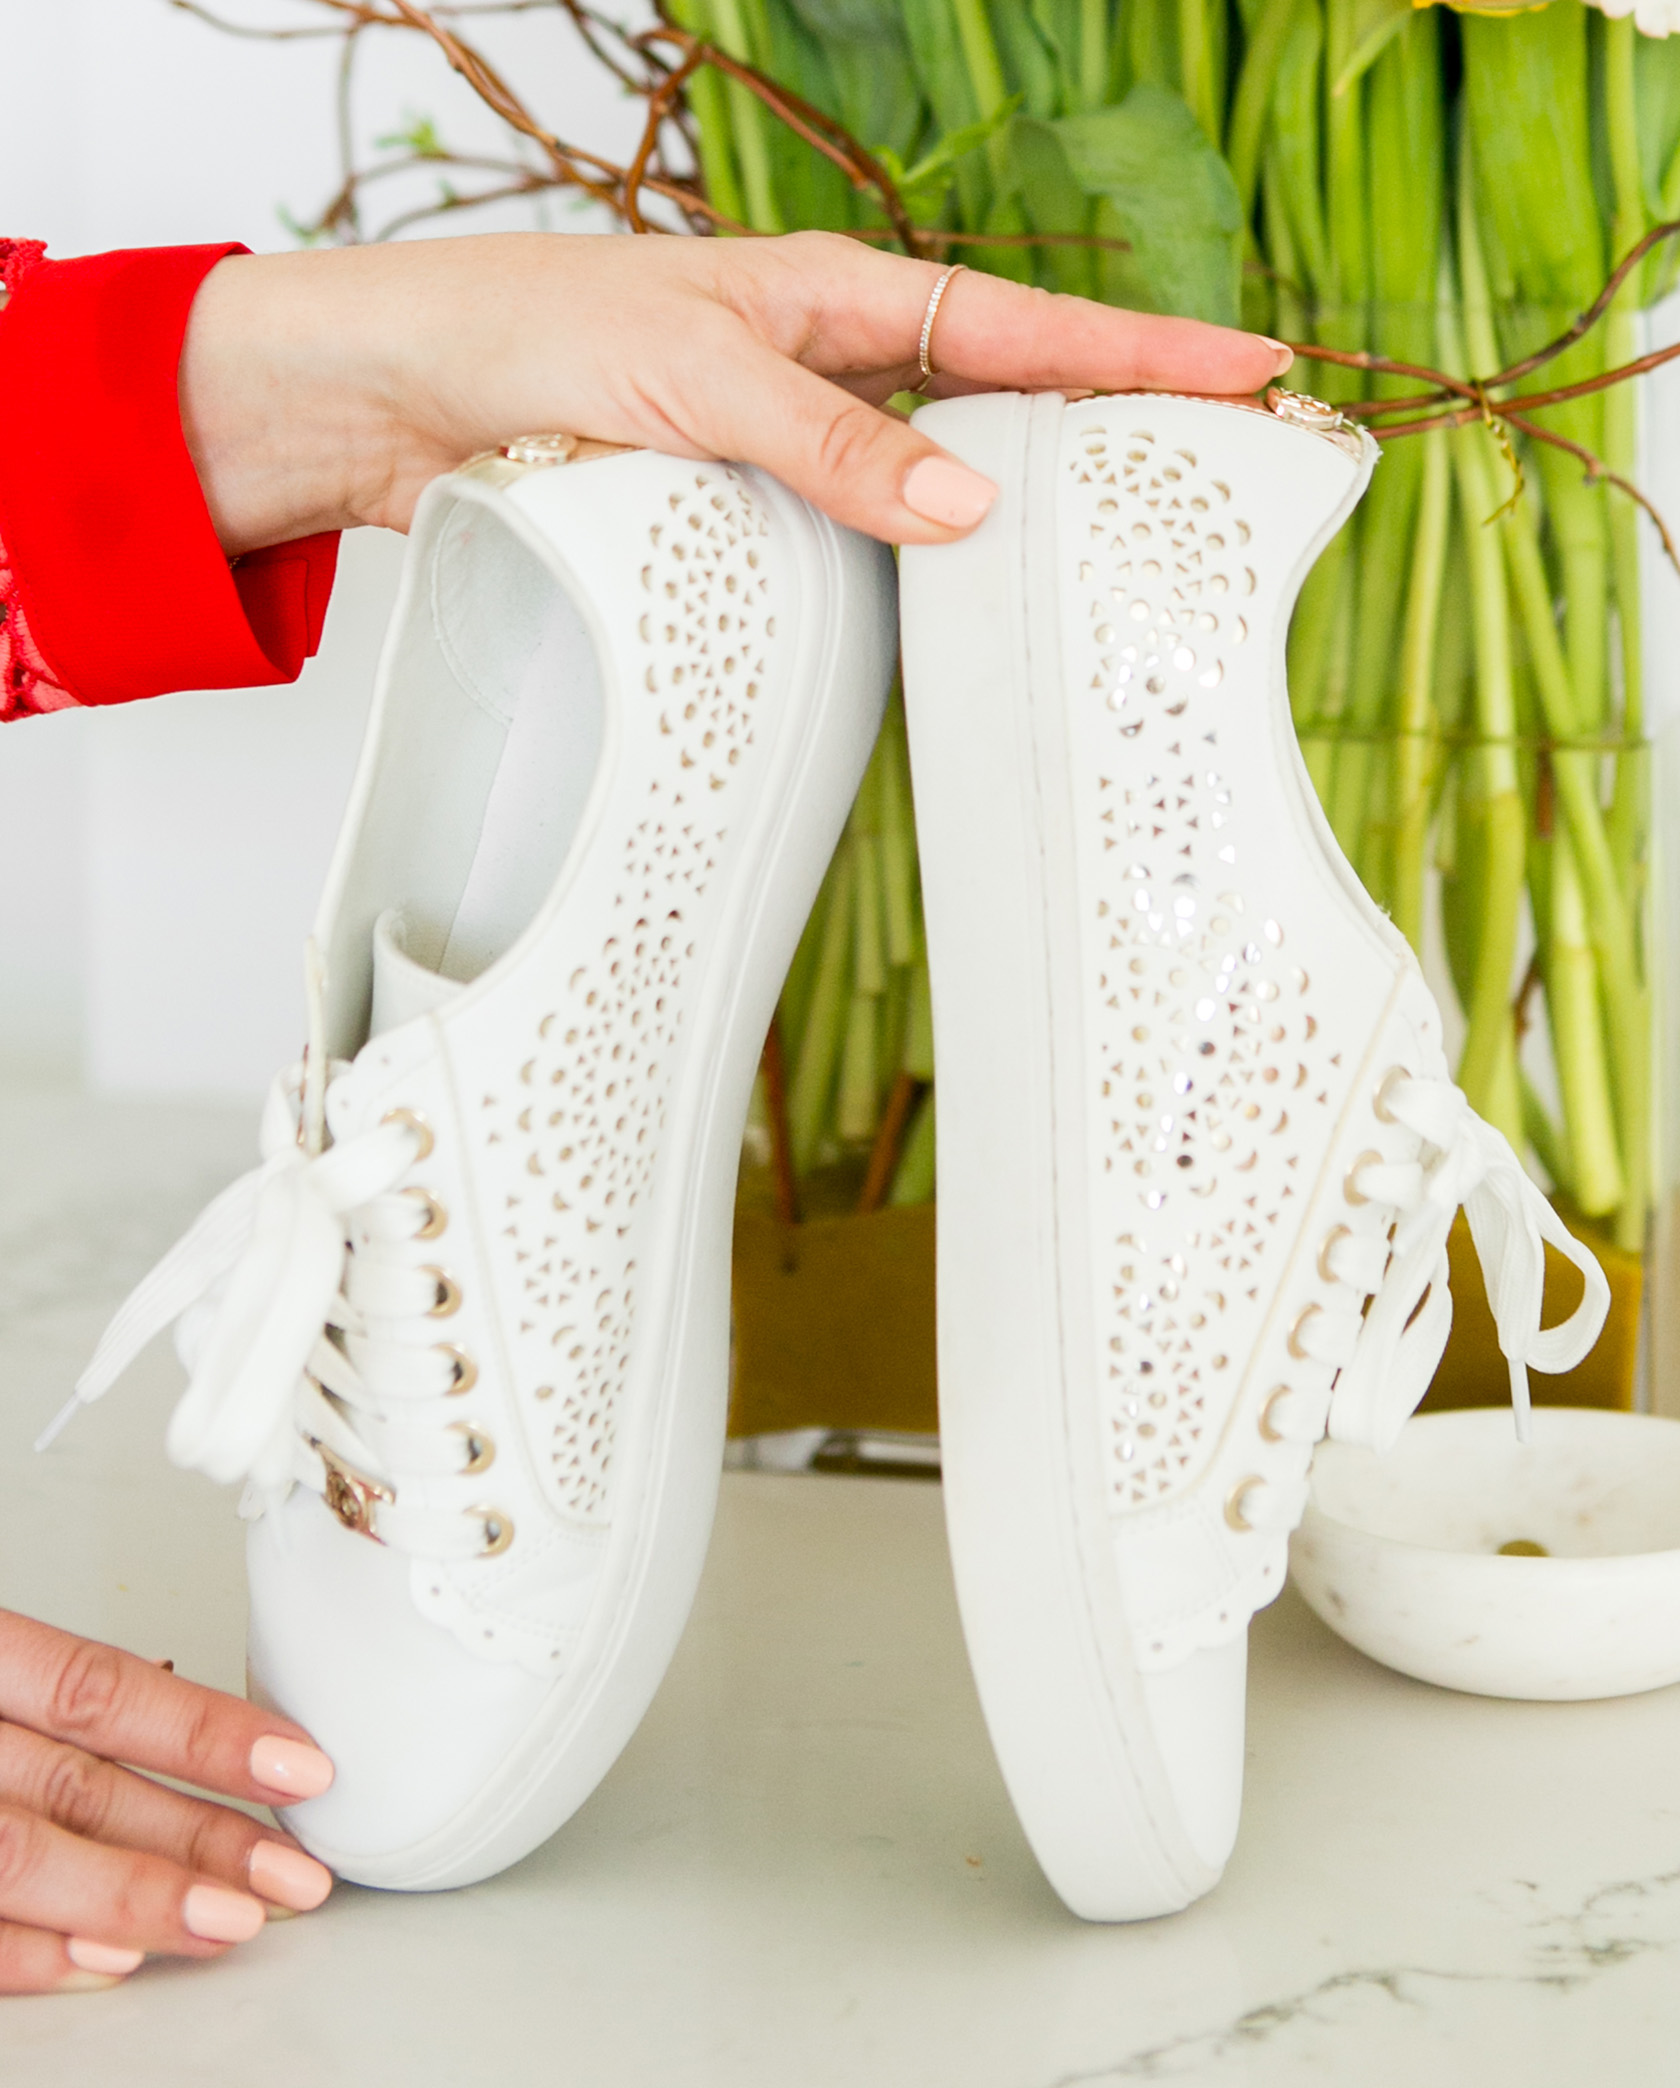 Sydne Style shows the best white sneakers with liz claiborne laser cut sneakers